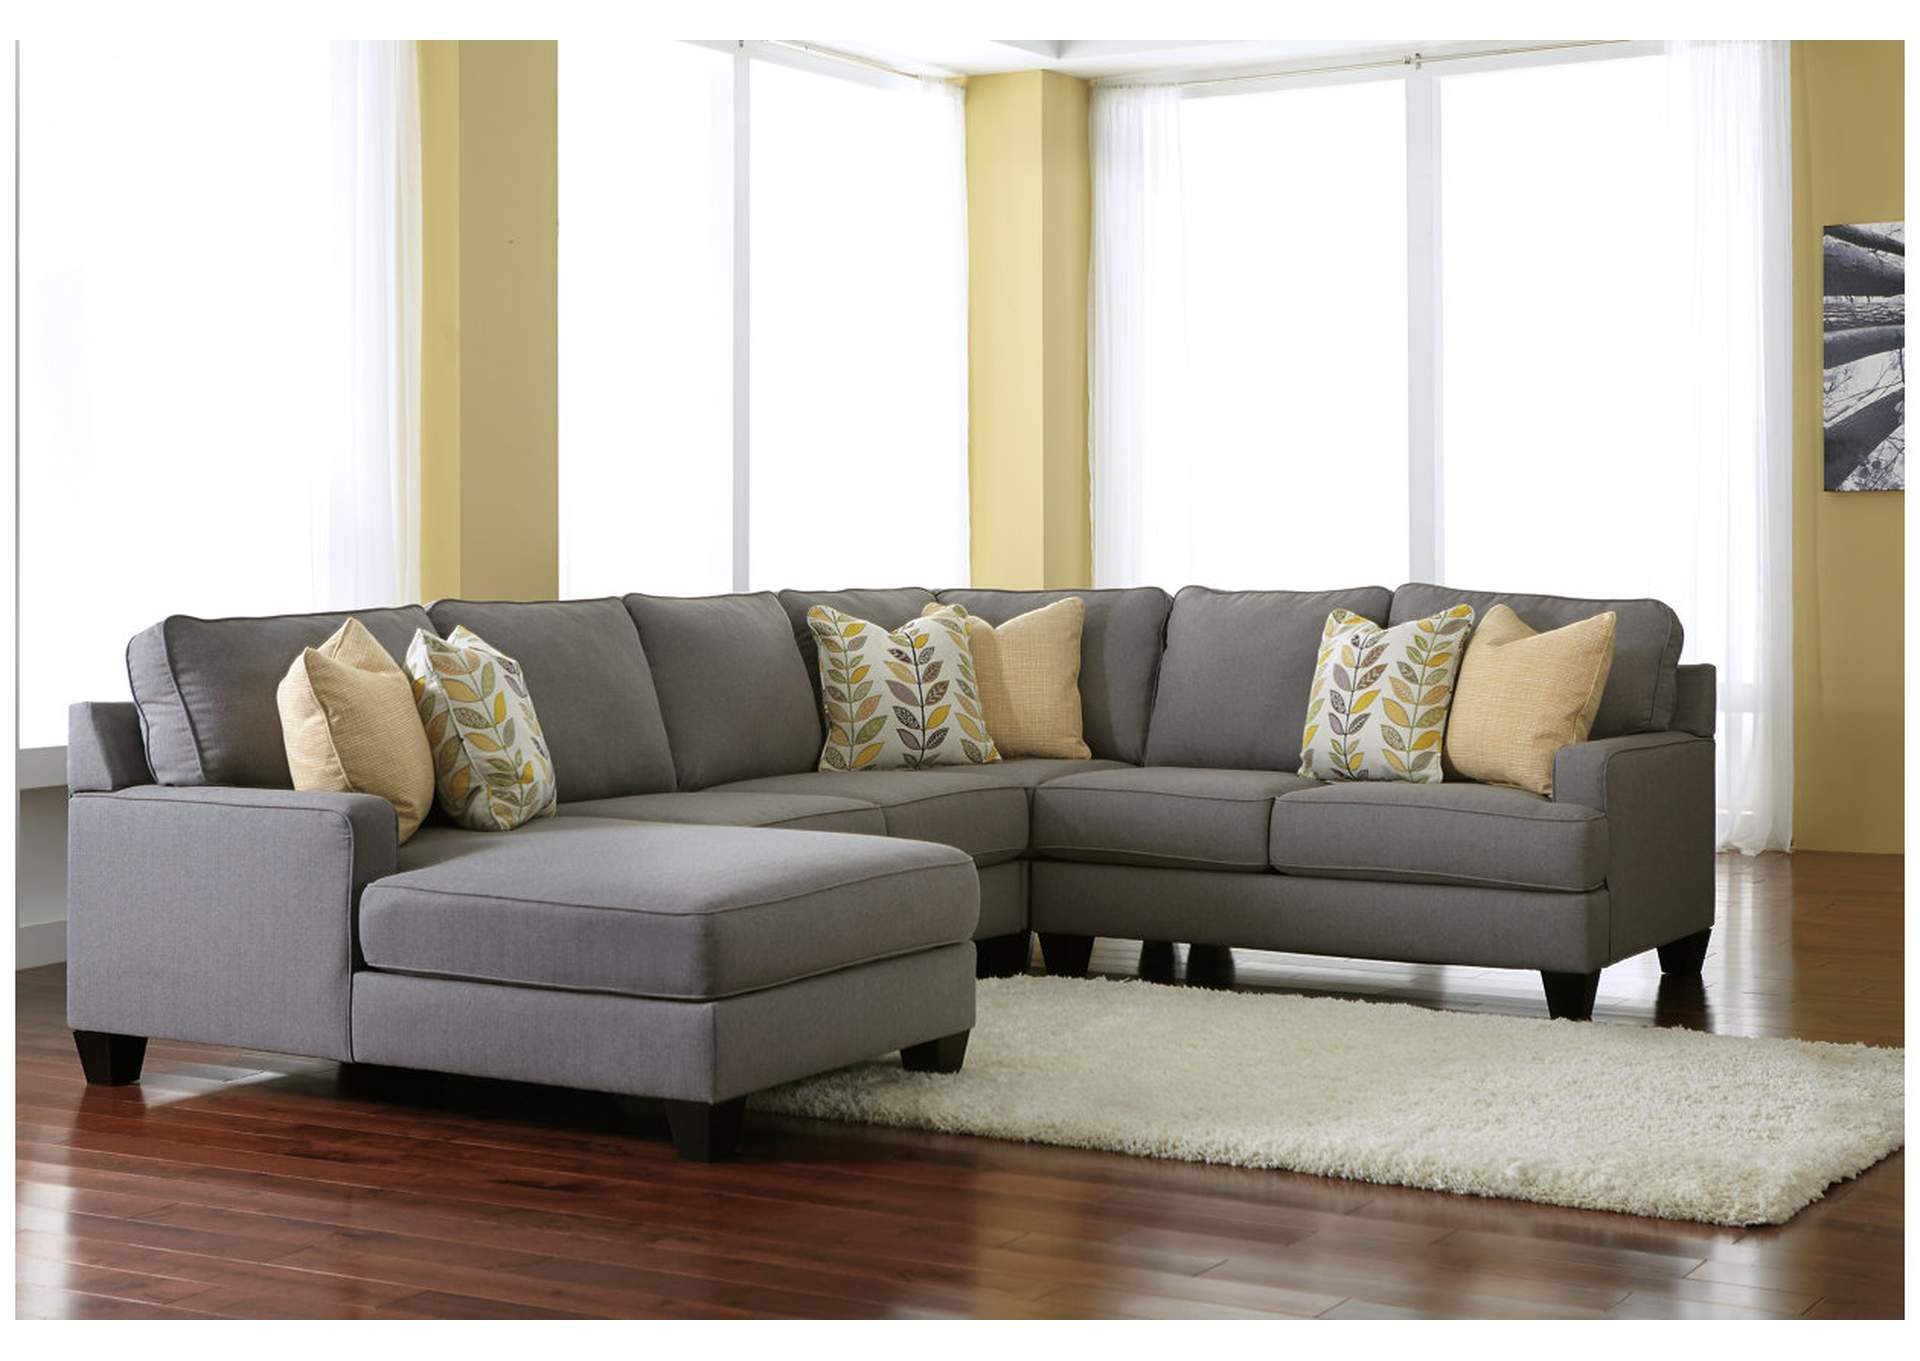 Chamberly Alloy Left Facing Chaise End Sectional,Signature Design By Ashley